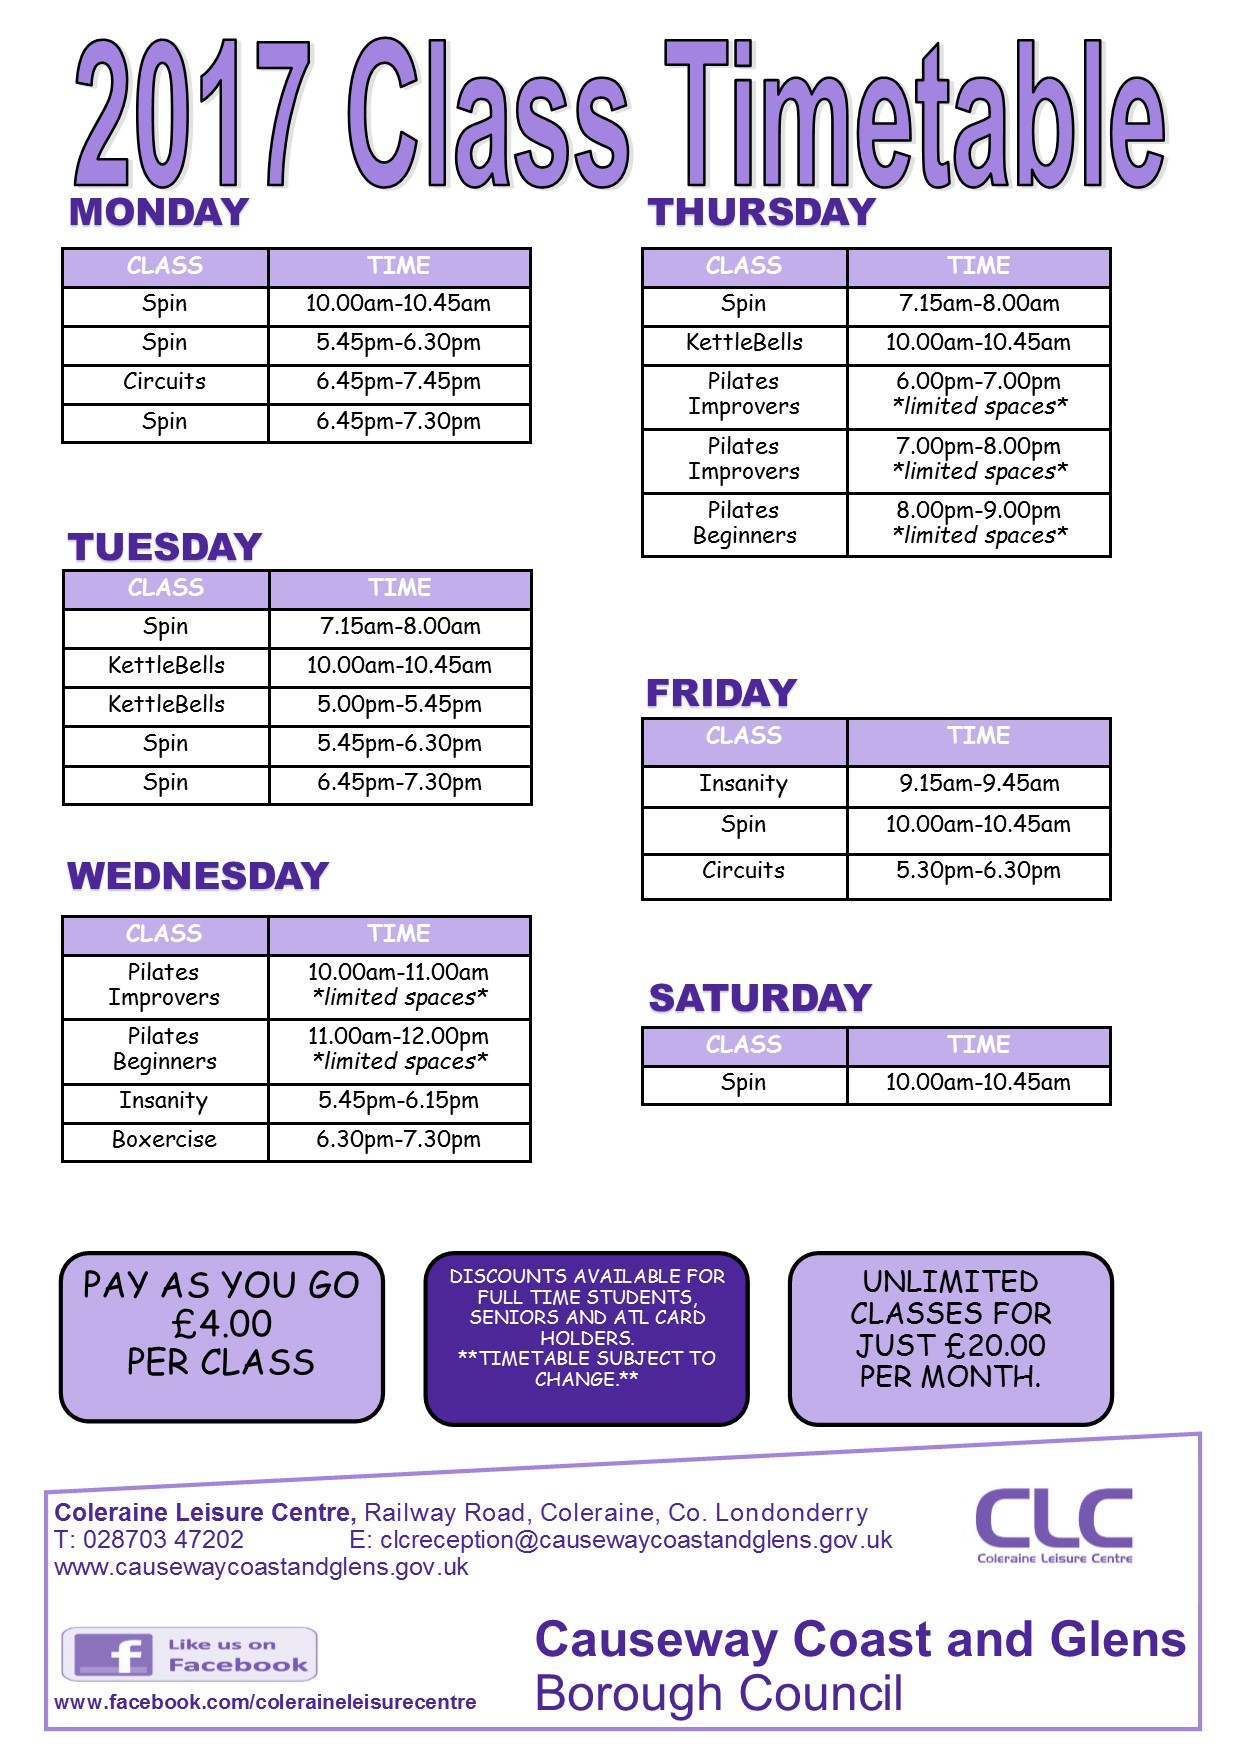 Class Timetable January 2017 Causeway Coast Glens Borough – Class Timetable